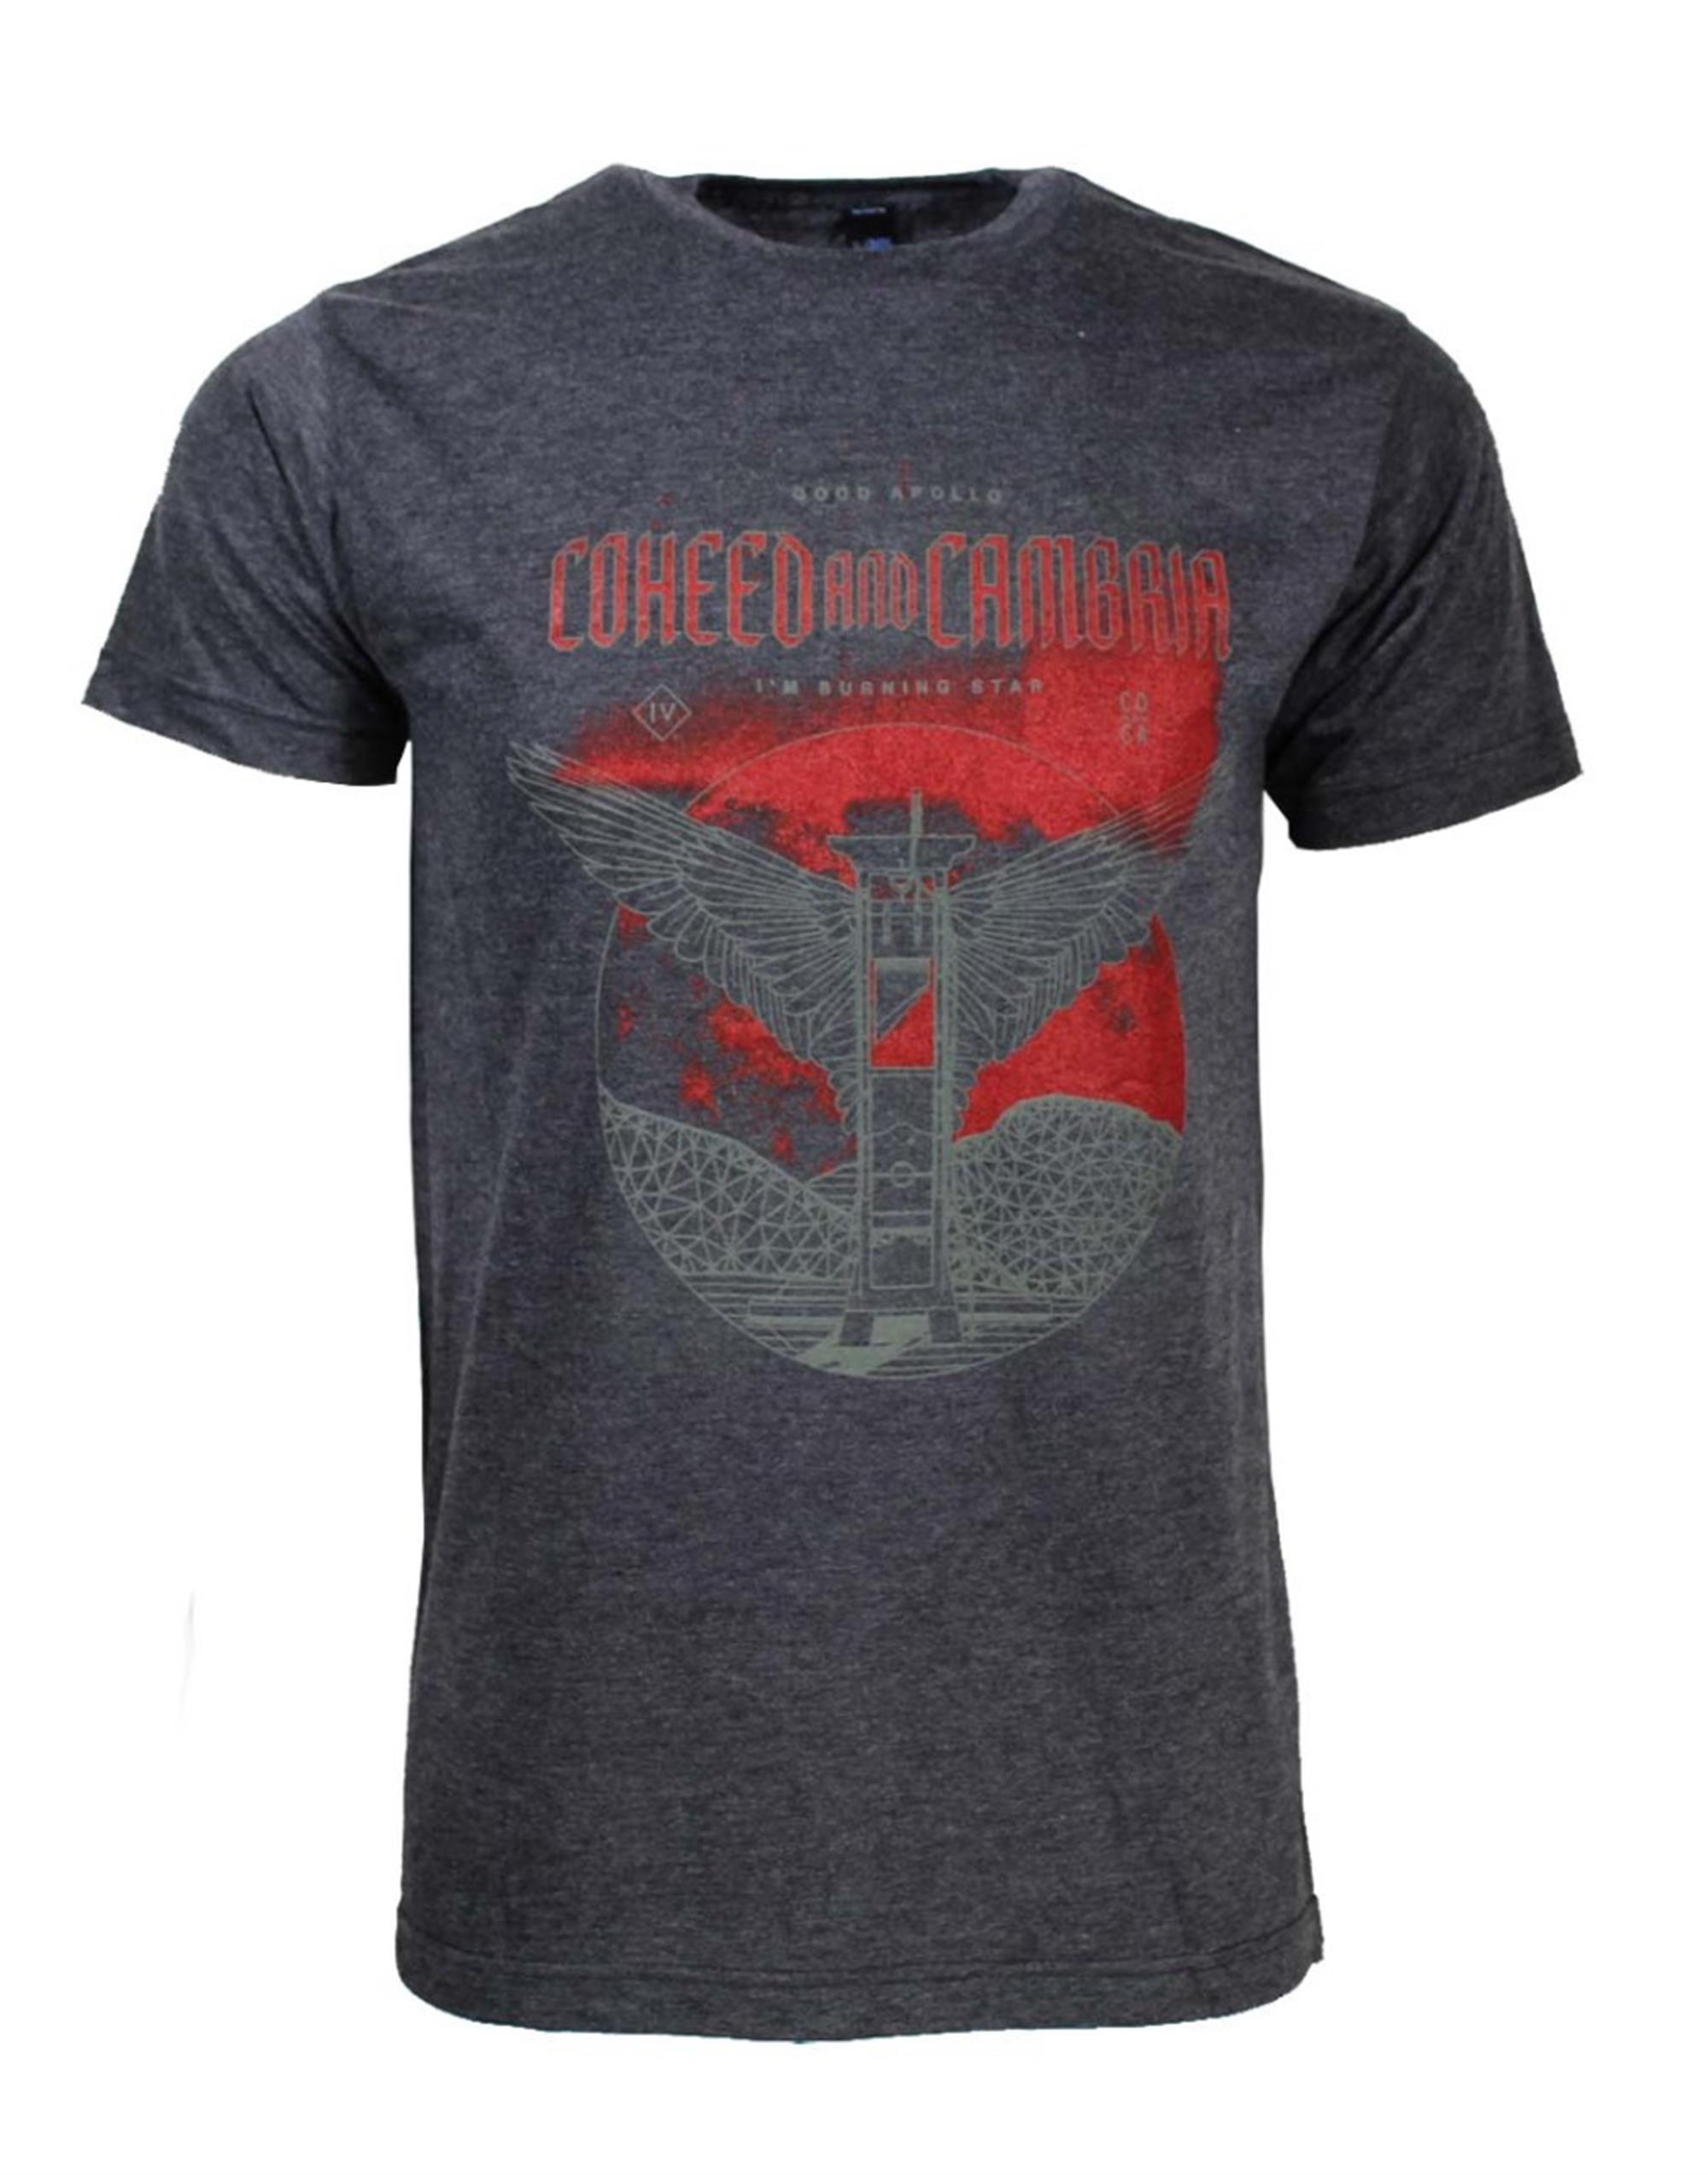 Coheed and Cambria Death Moon T-Shirt